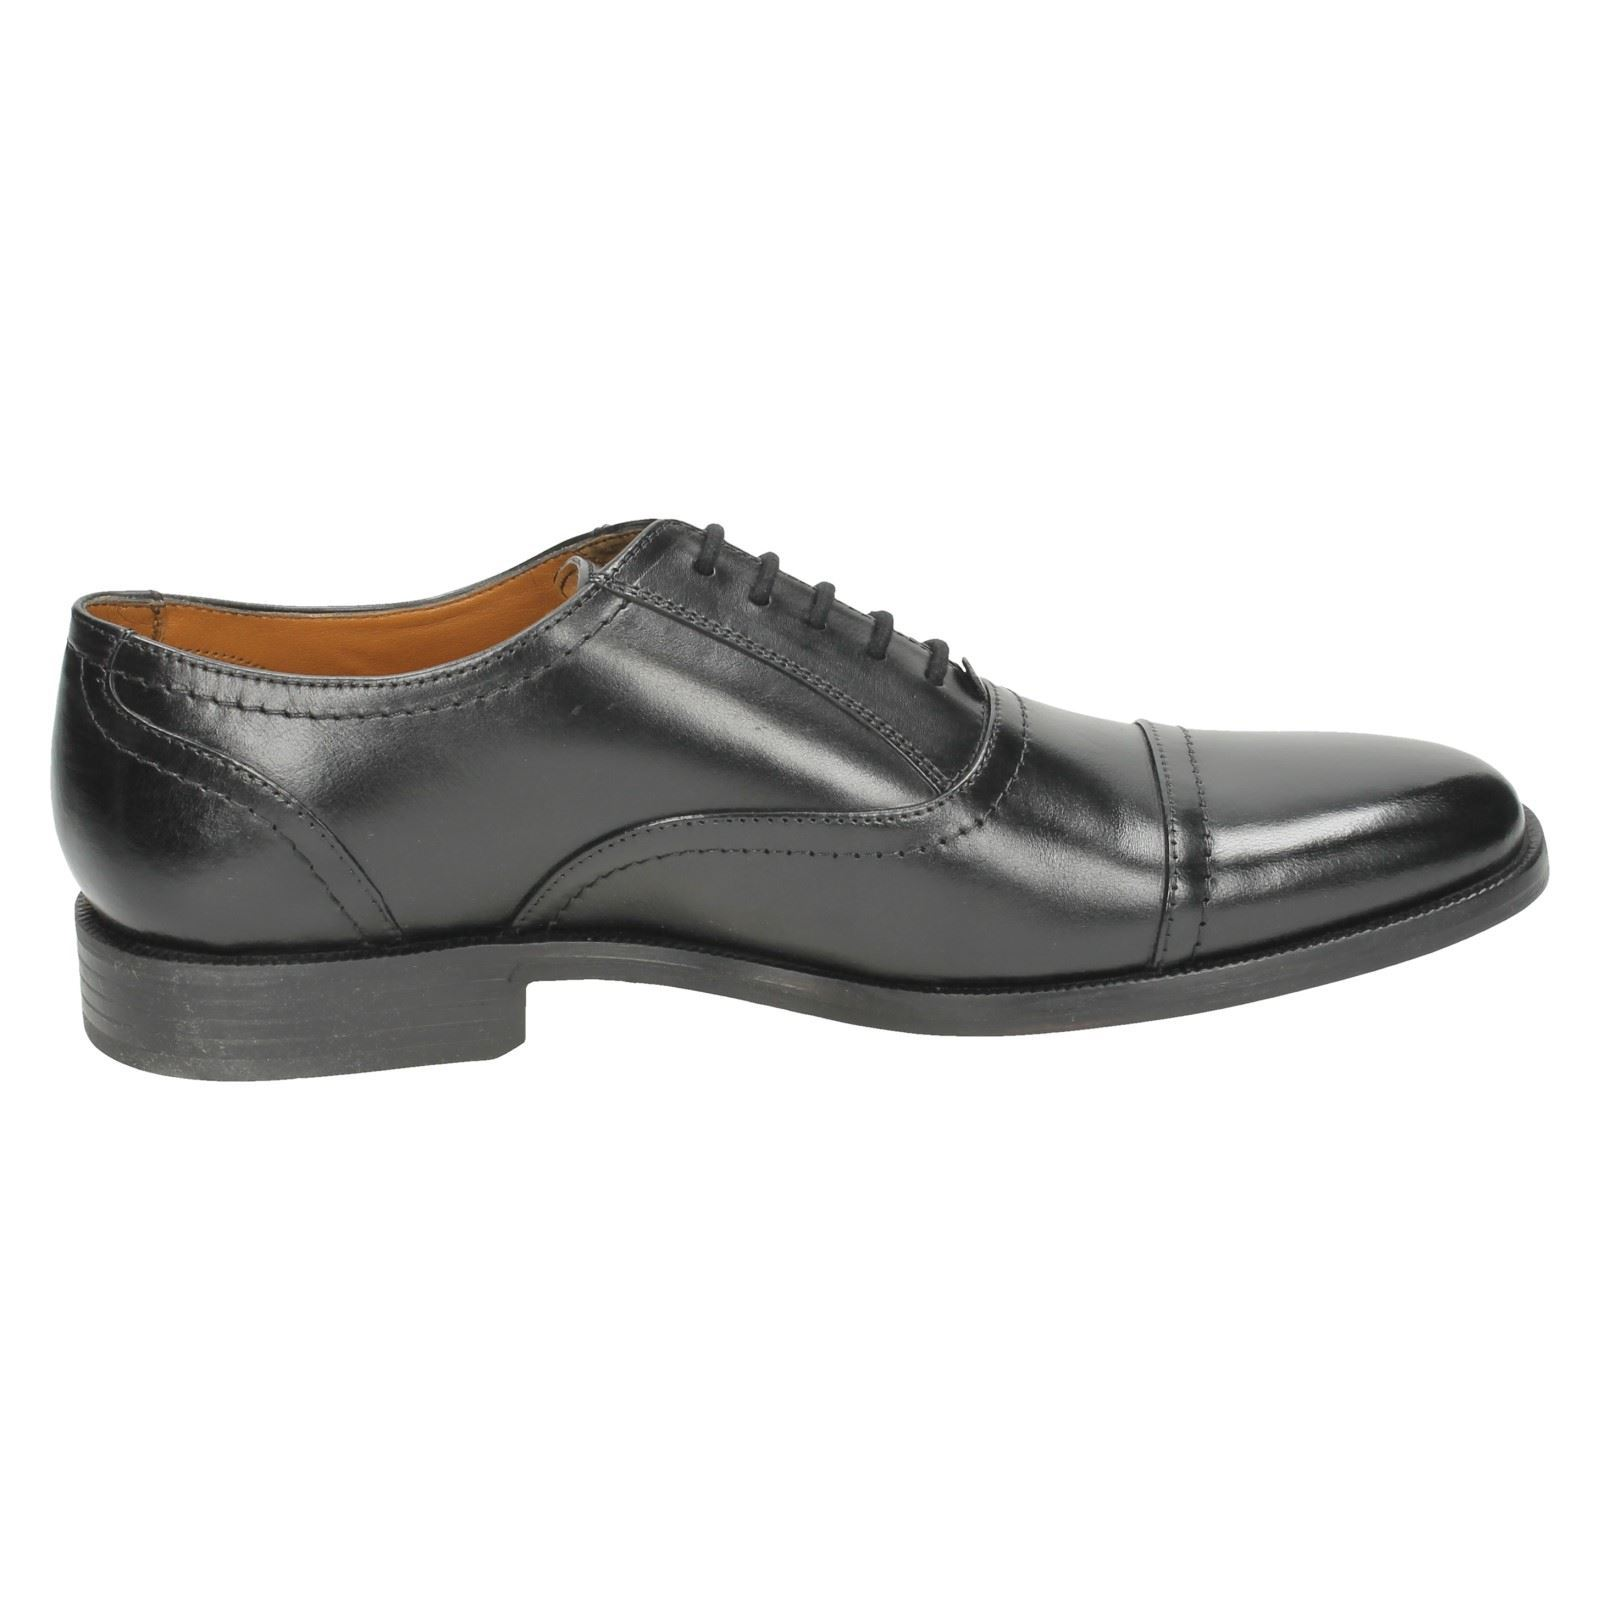 Uomo Clarks Formal Lift' Lace Up Schuhes 'Holter Lift' Formal 34f02c